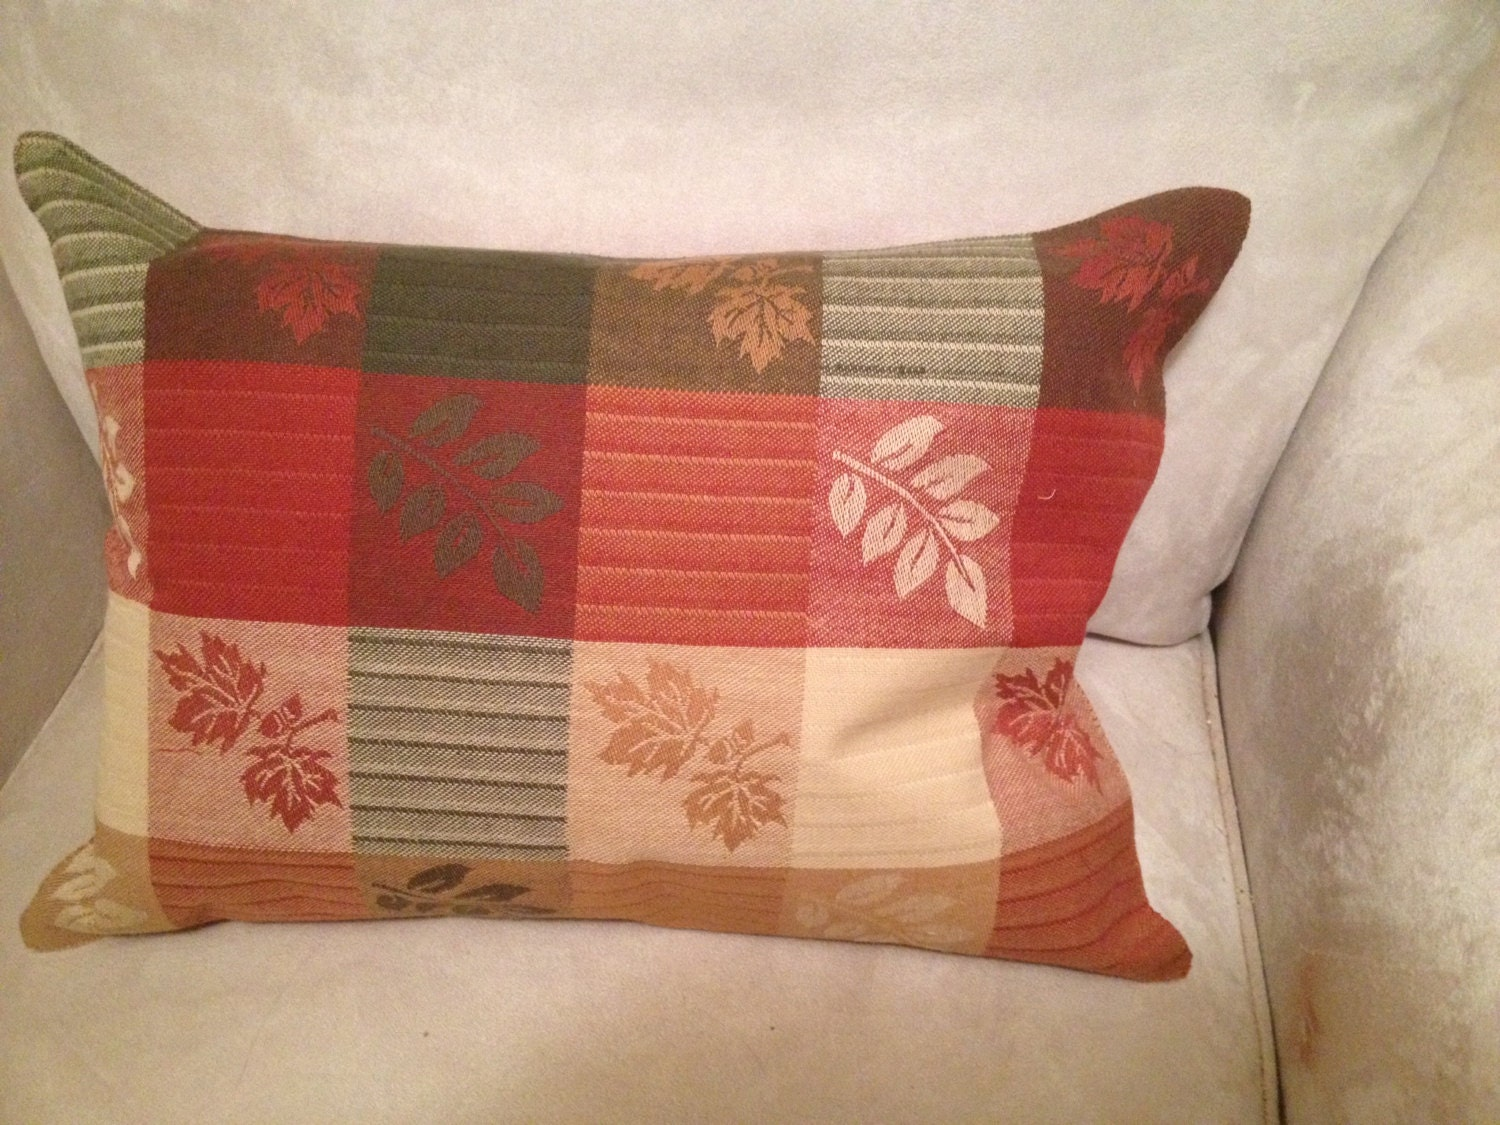 Fall Throw Pillow Ideas : AUTUMN LEAVES SQUARES Fall Accent Pillow Designs in shades